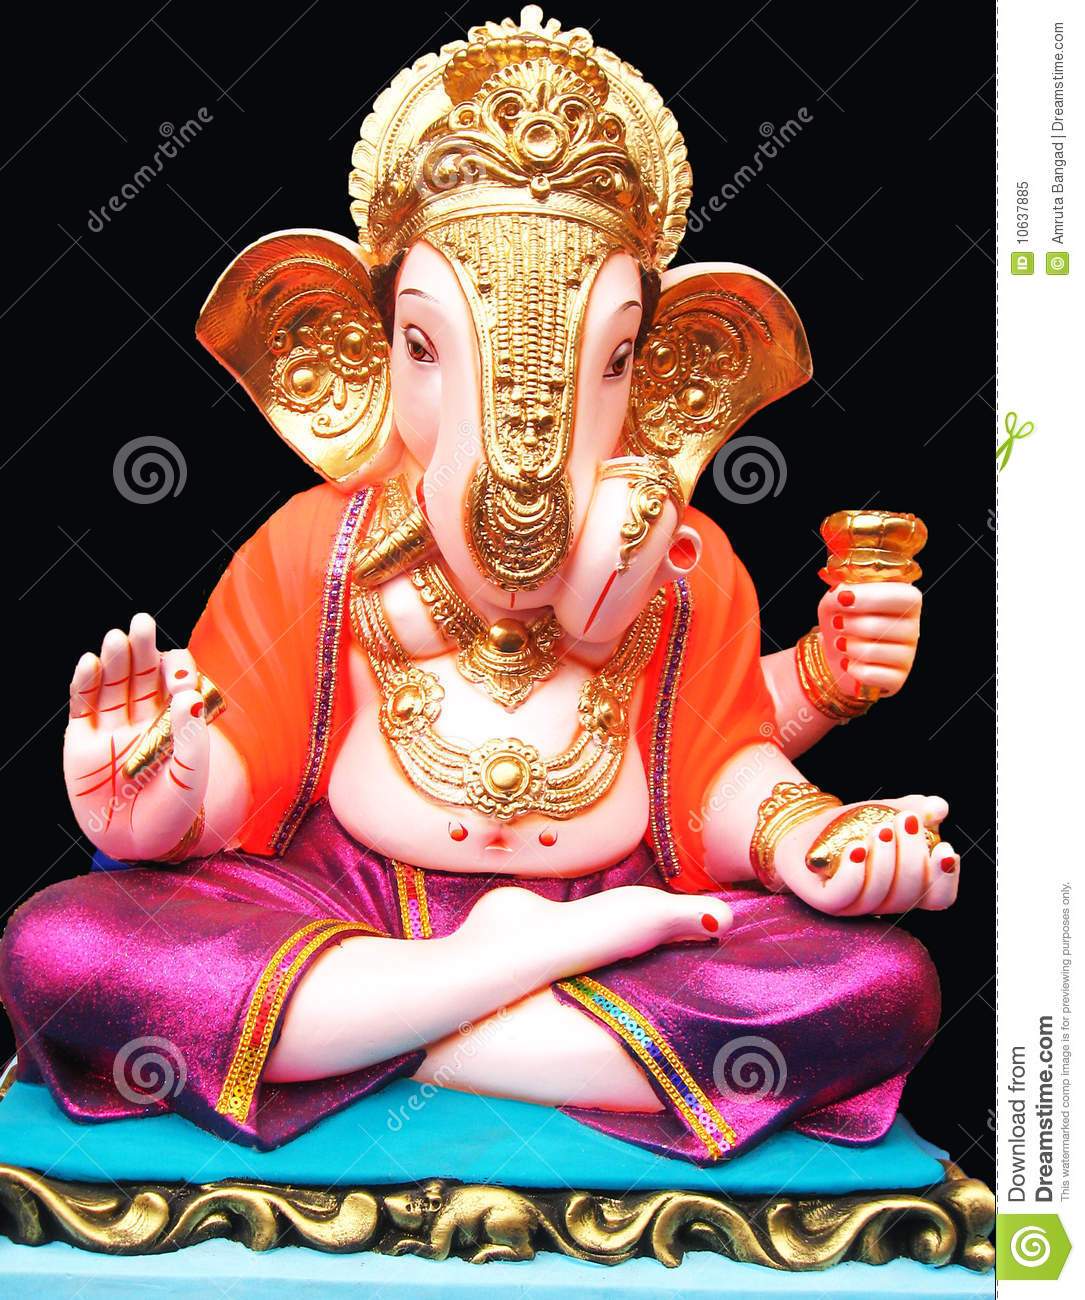 Lord ganesh pictures download